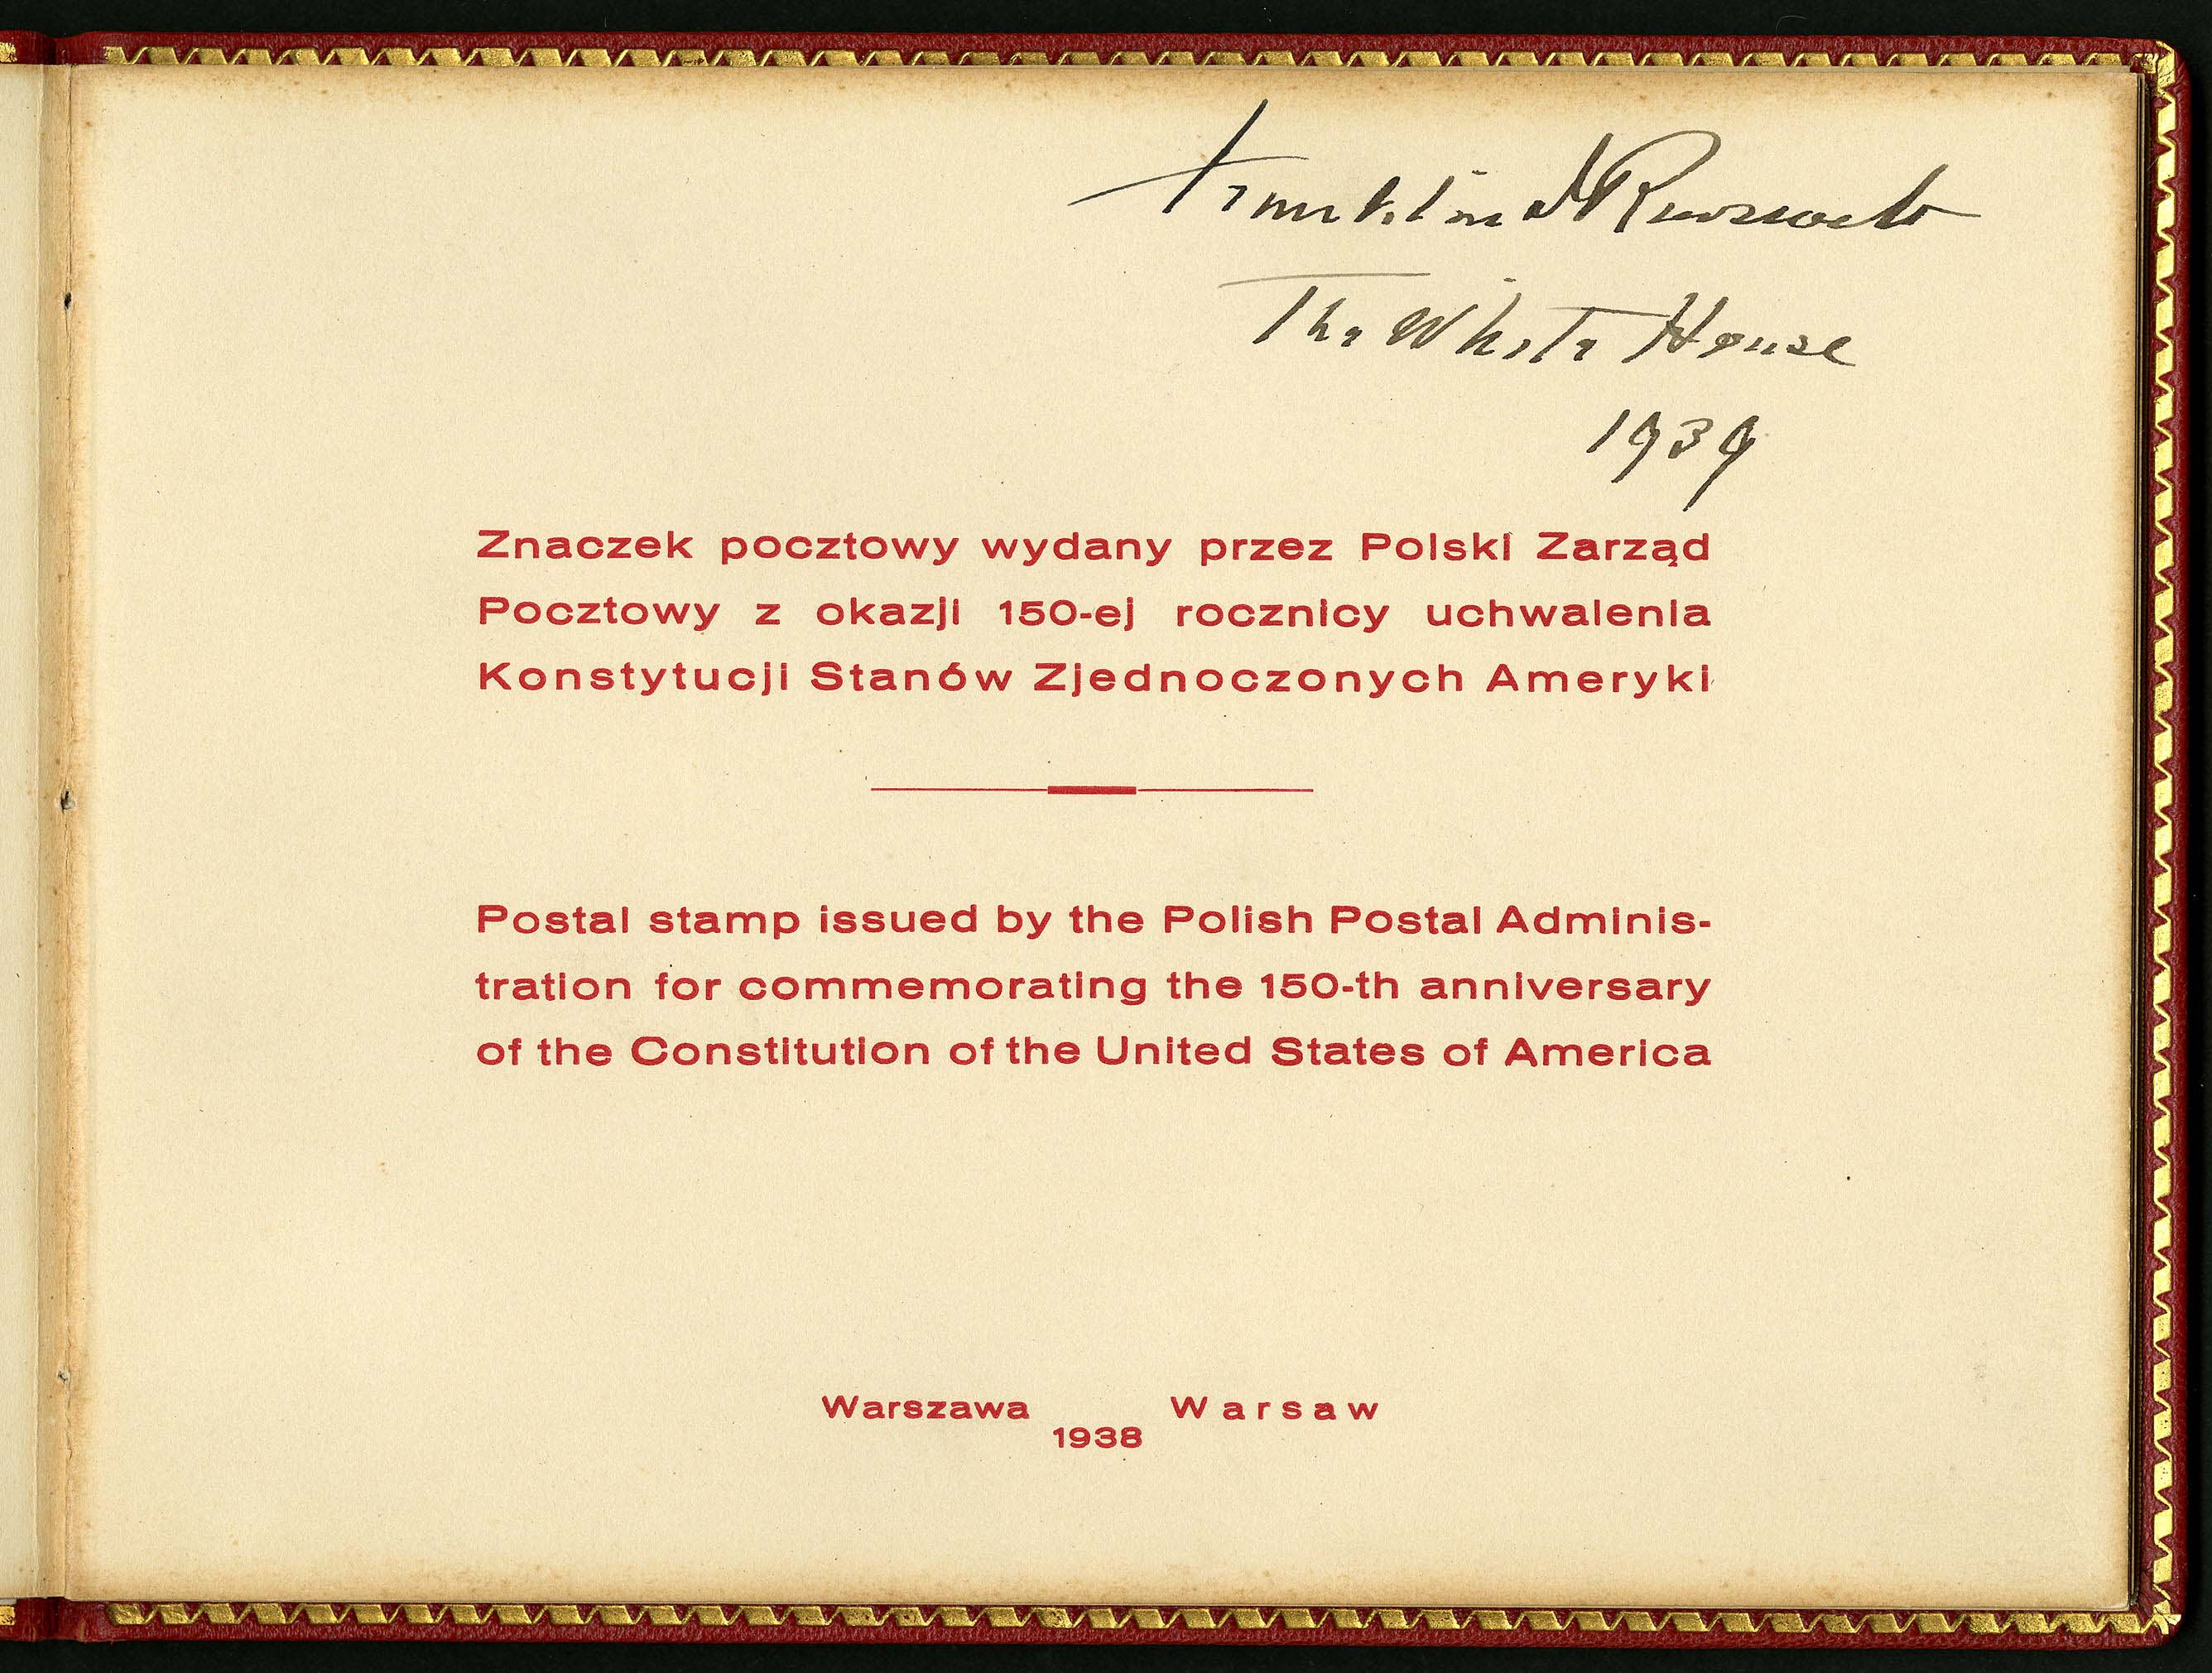 FDR's signature on a 1938 presentation album from Poland. (Courtesy of the National Postage Museum.)